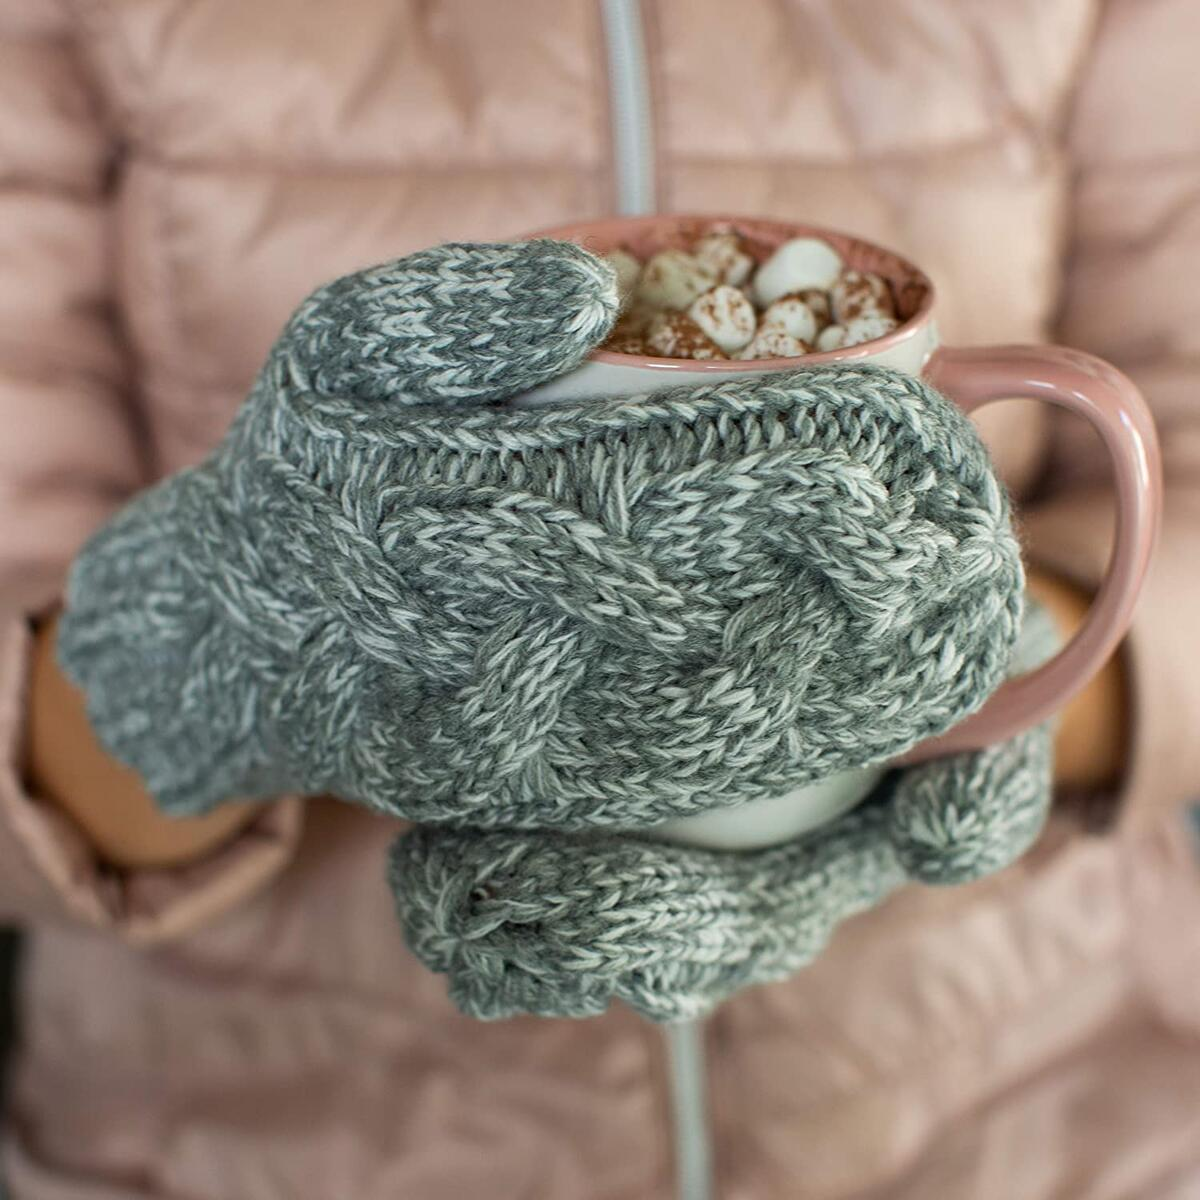 Mittens for Women Soft and Cozy for Cold Weather Wool Knit Womans Winter Mittens Warm Gloves (Grey White Mix)…